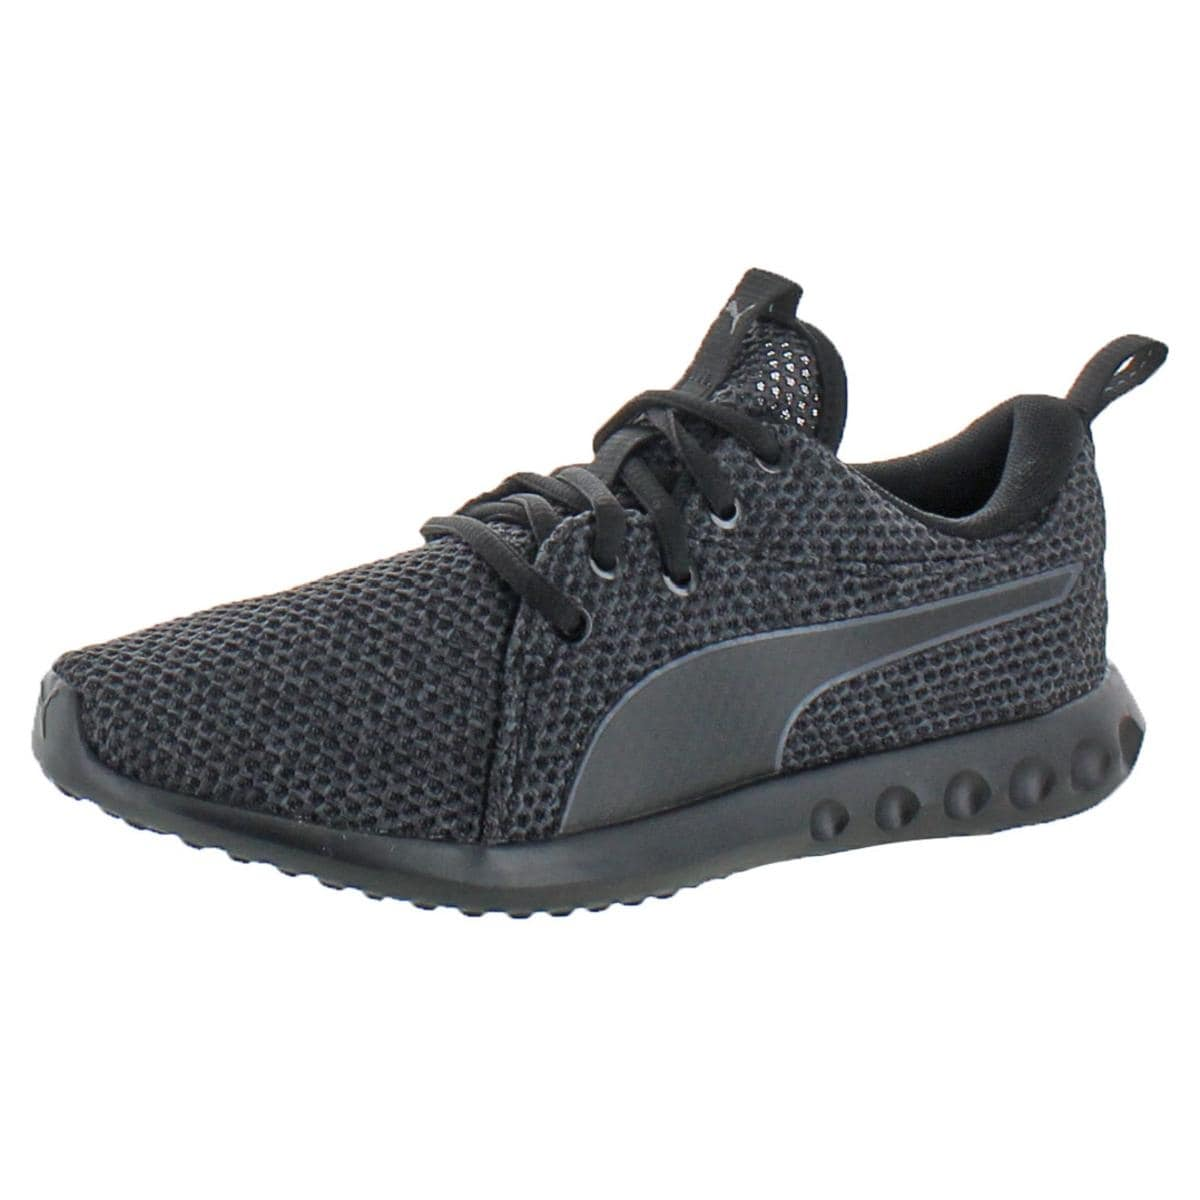 4aa7e5a7ea8ee3 Puma Womens Carson 2 Nature Knit Running Shoes SoftFoam Lifestyle